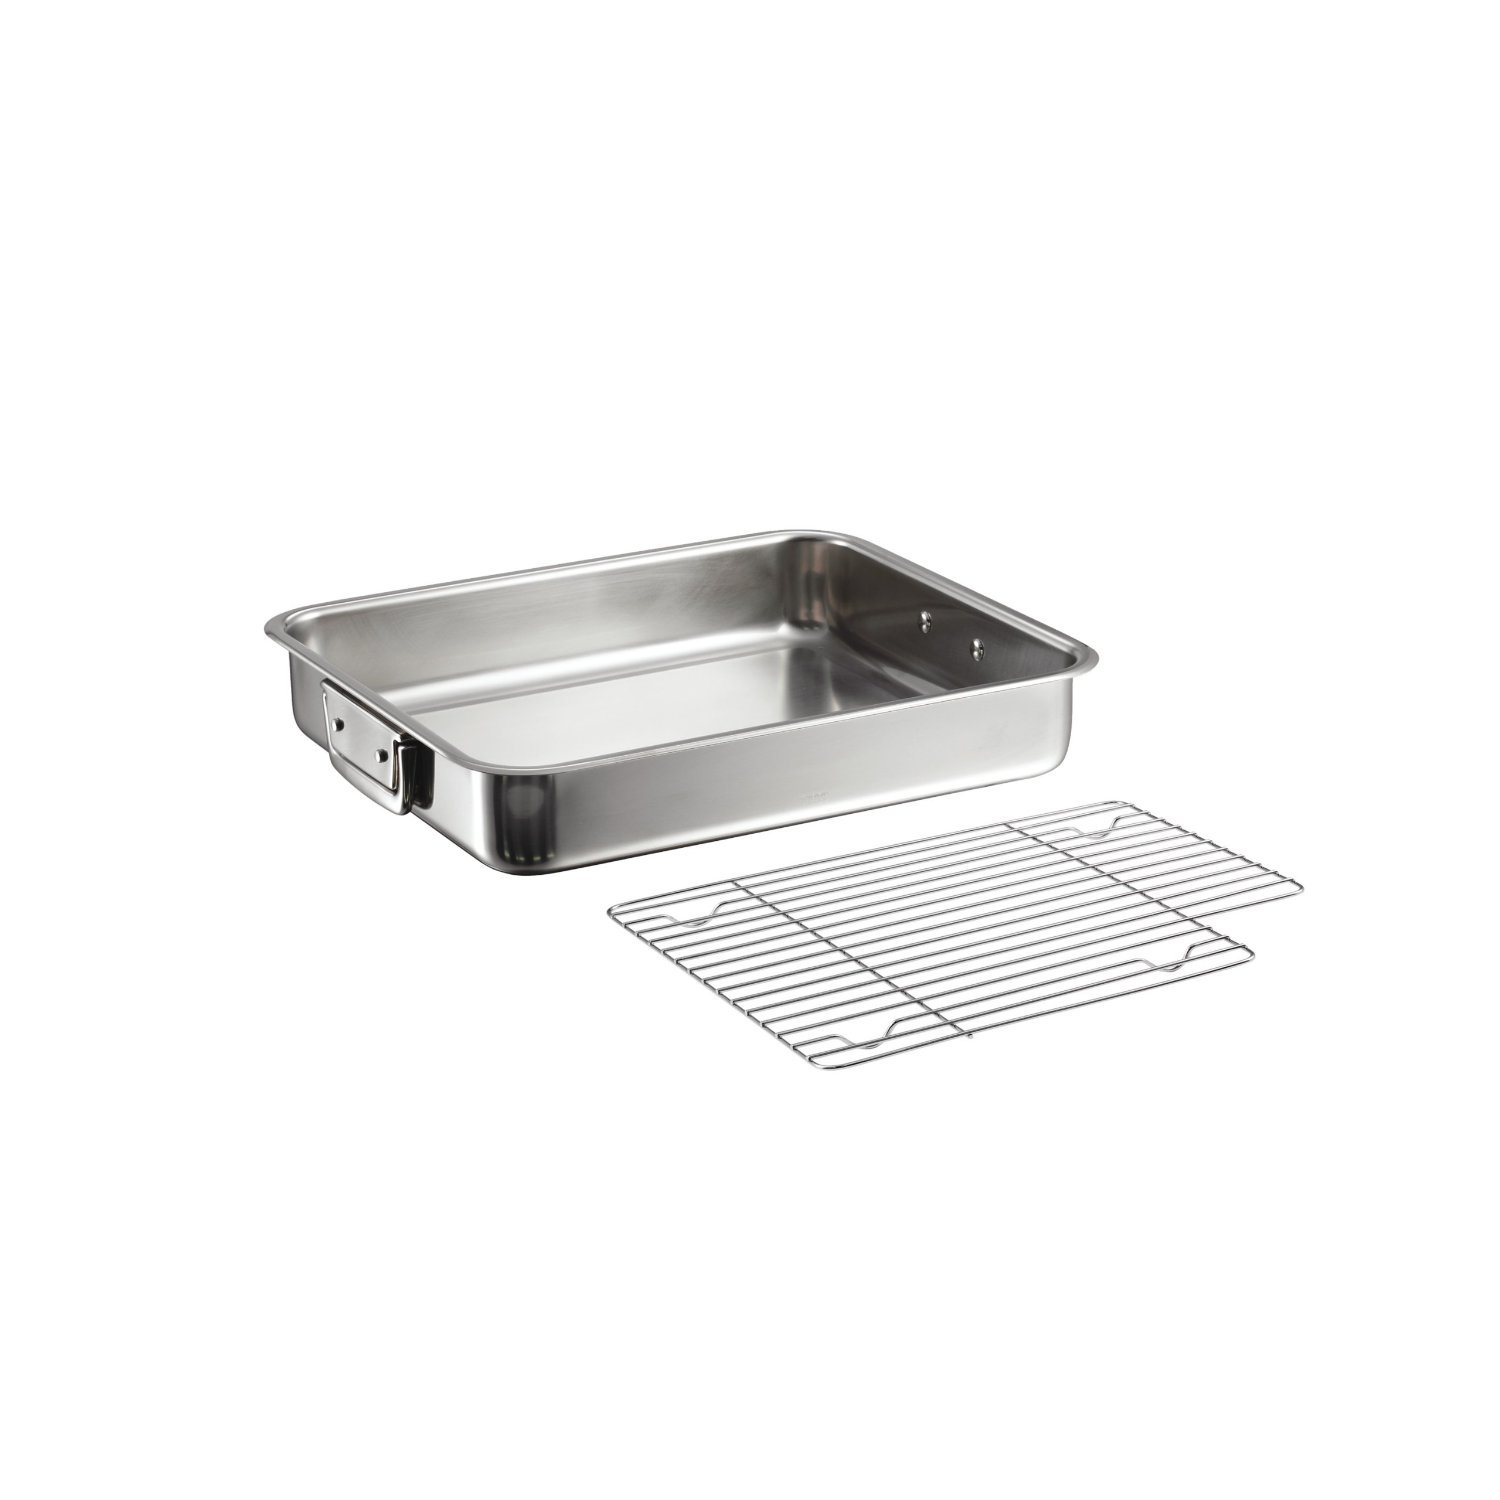 Roasting Pan Tramontina 16.5 in 18/10 Stainless Steel with Basting Grill by Tramontina